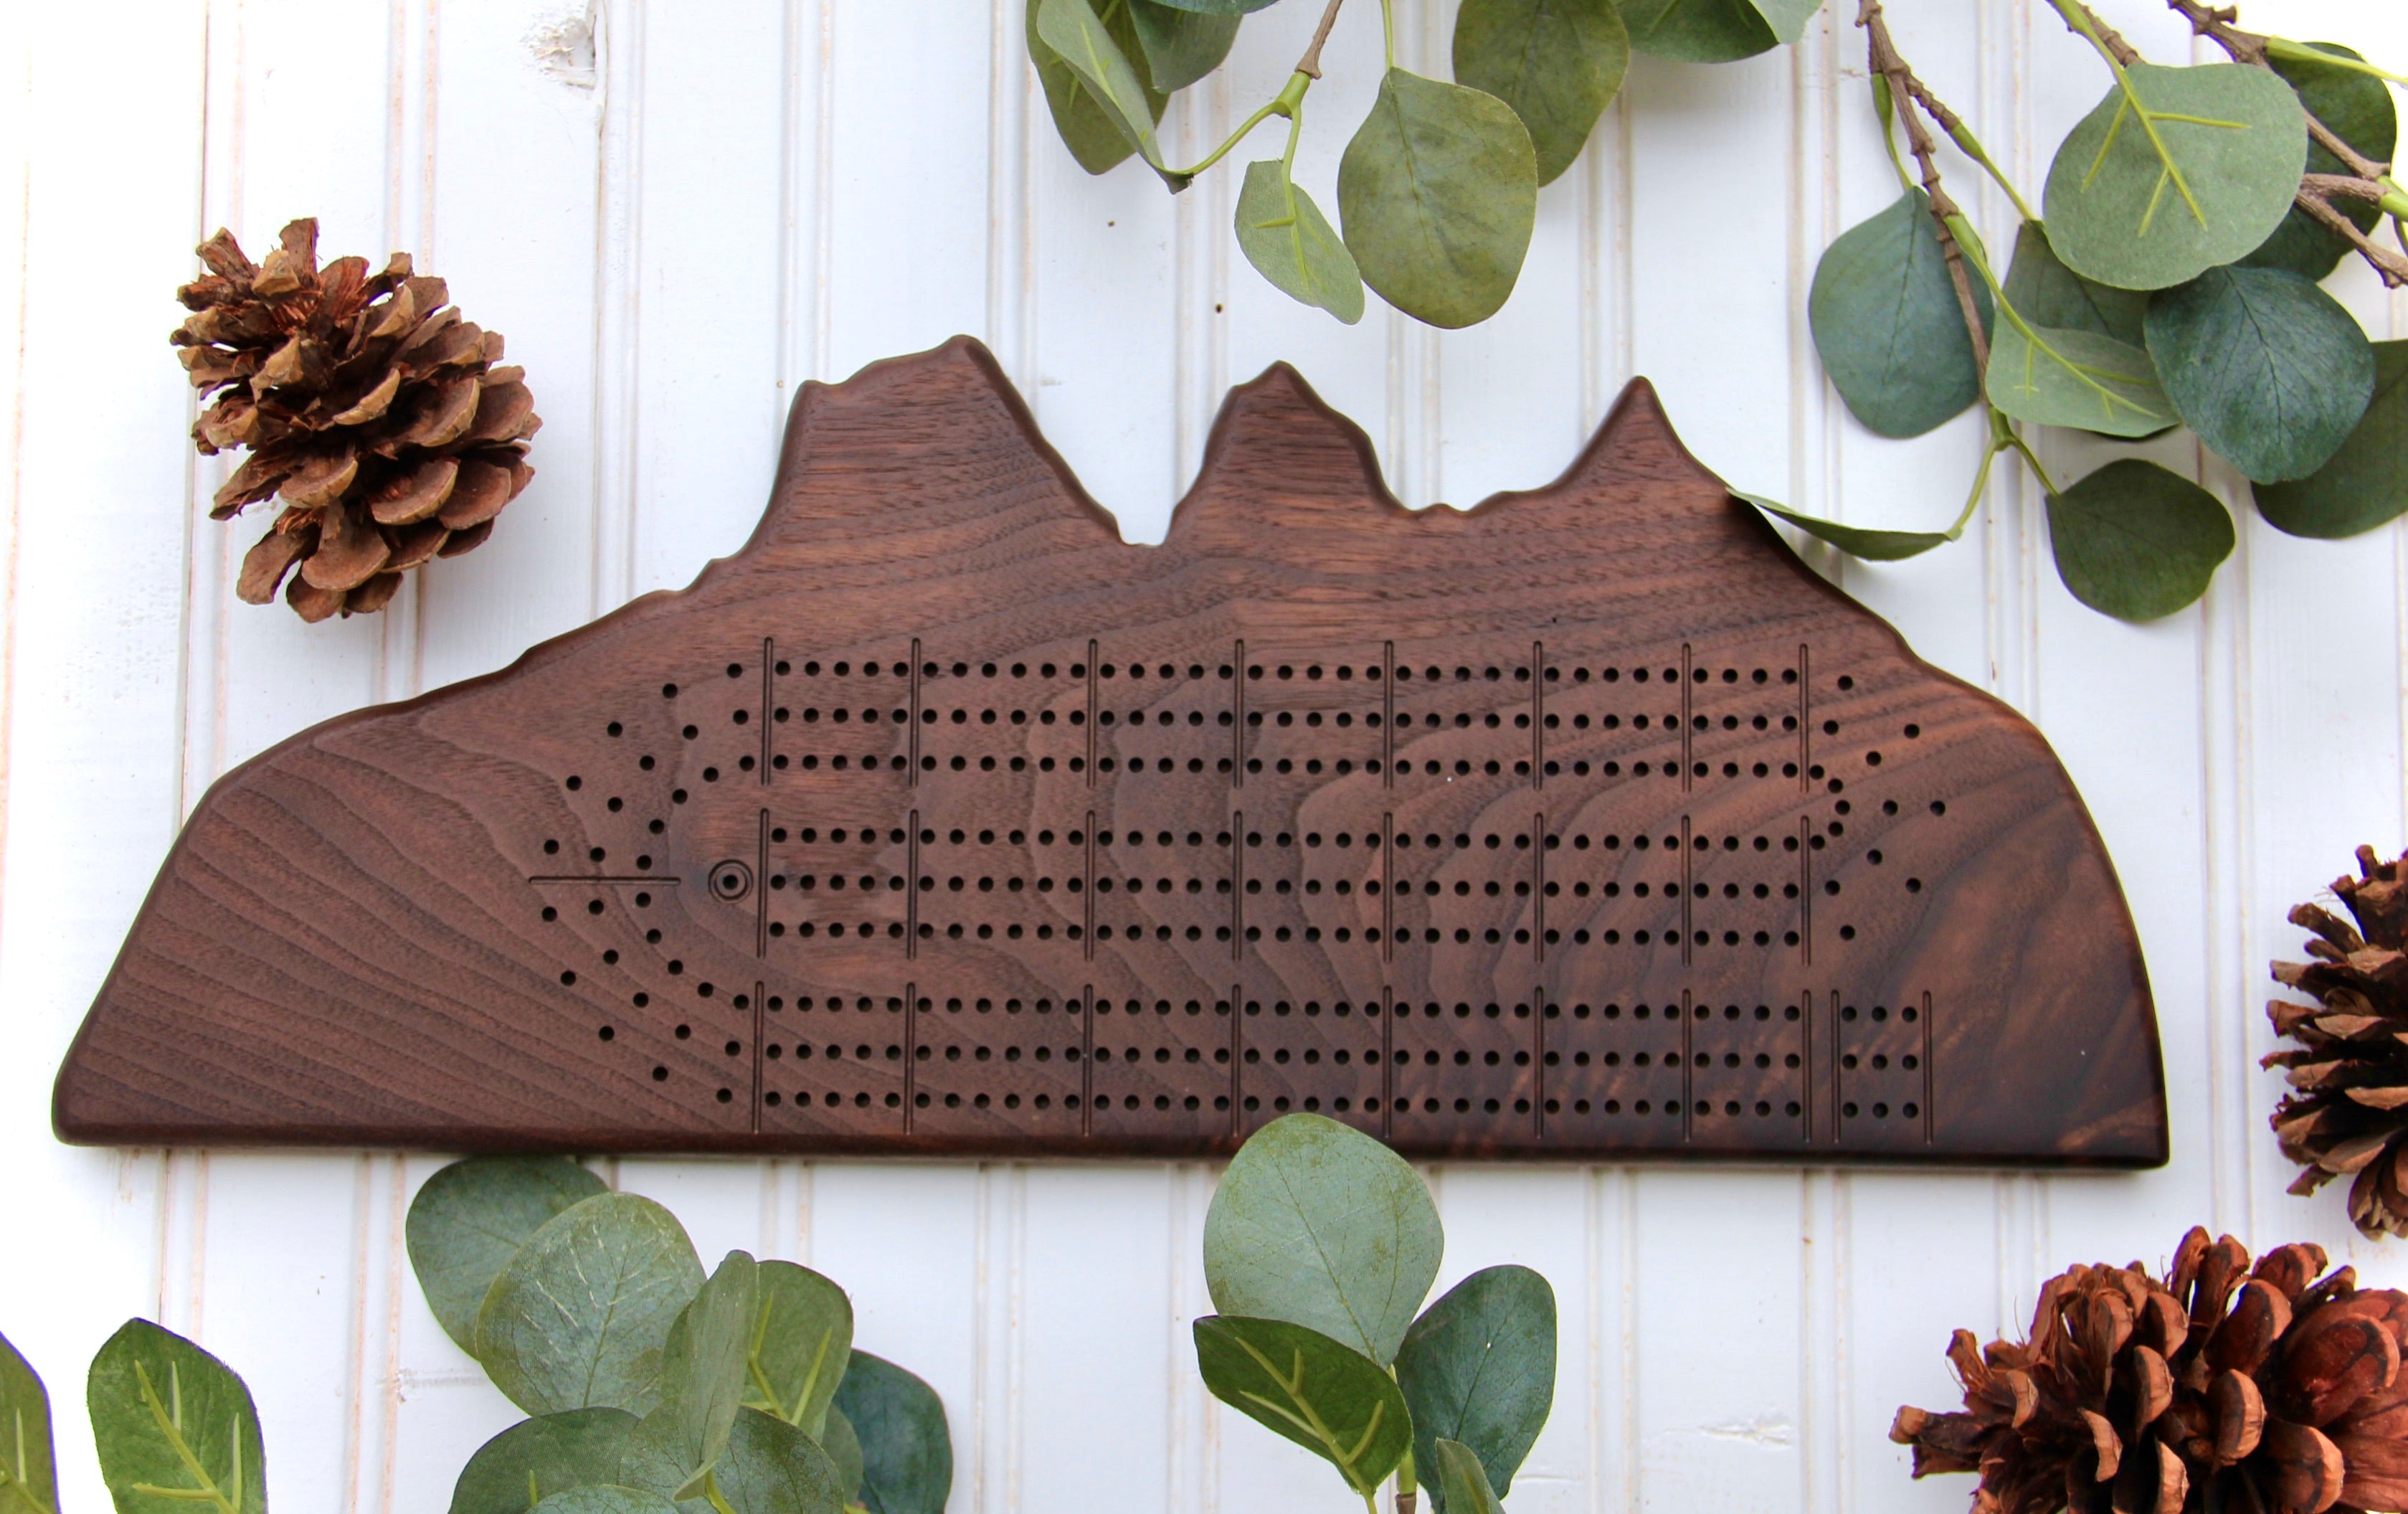 Custom Shape Cribbage Boards